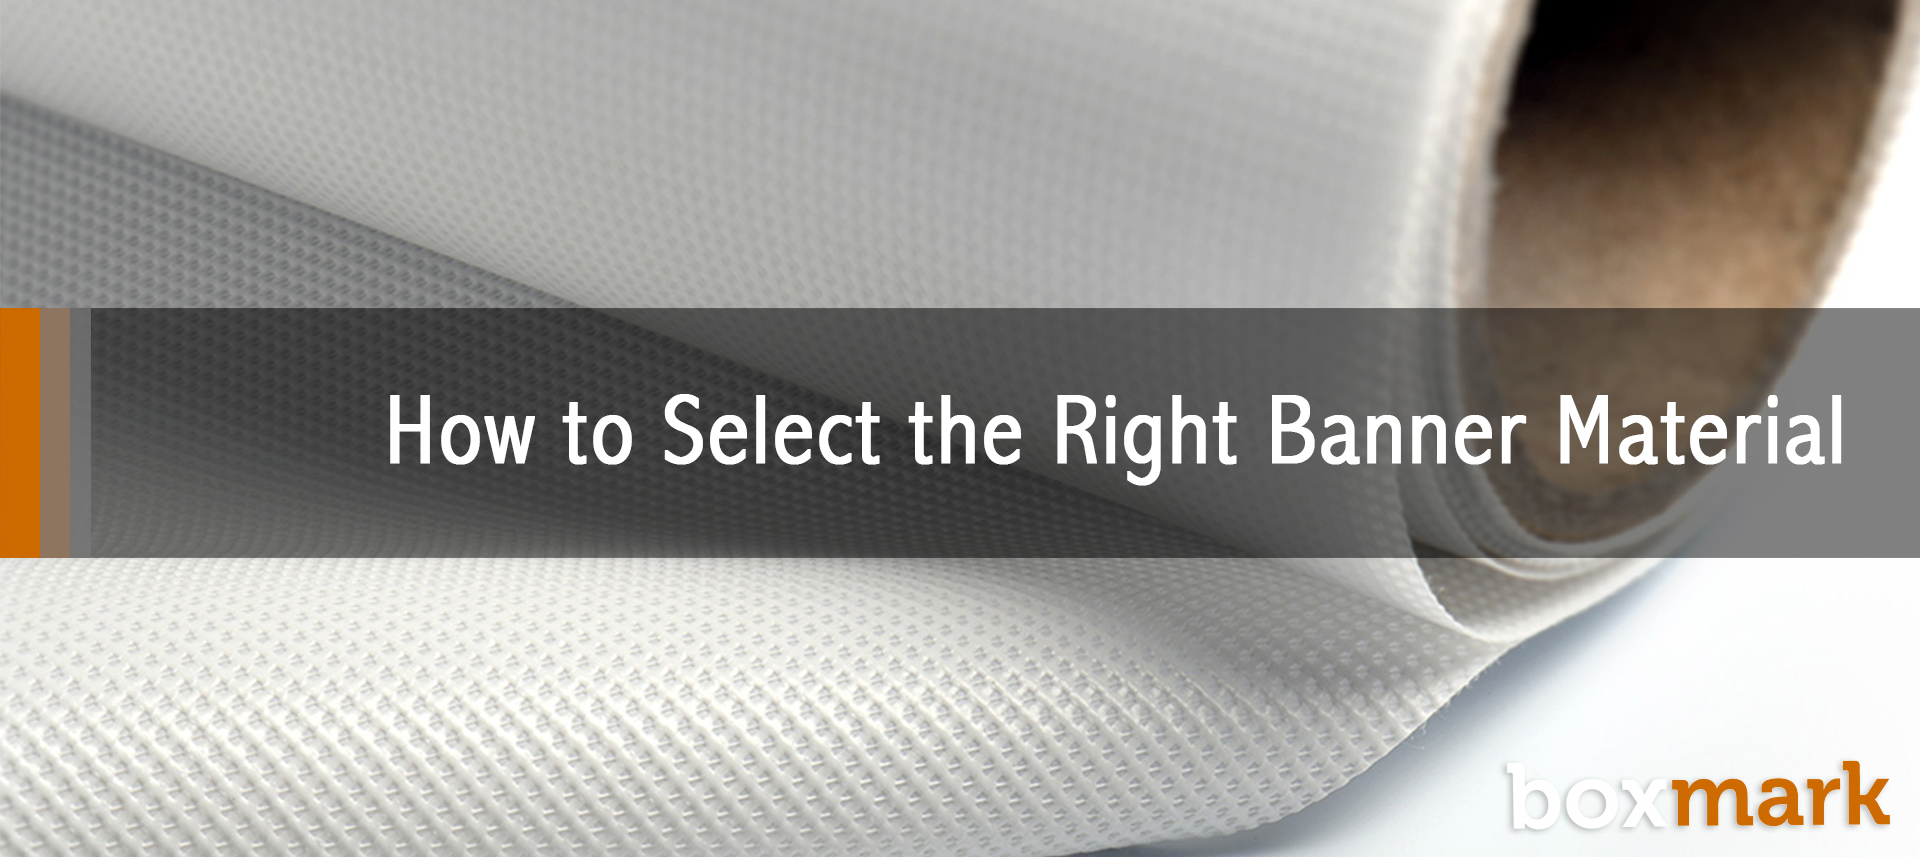 How to Select the Right Material for Banner Printing